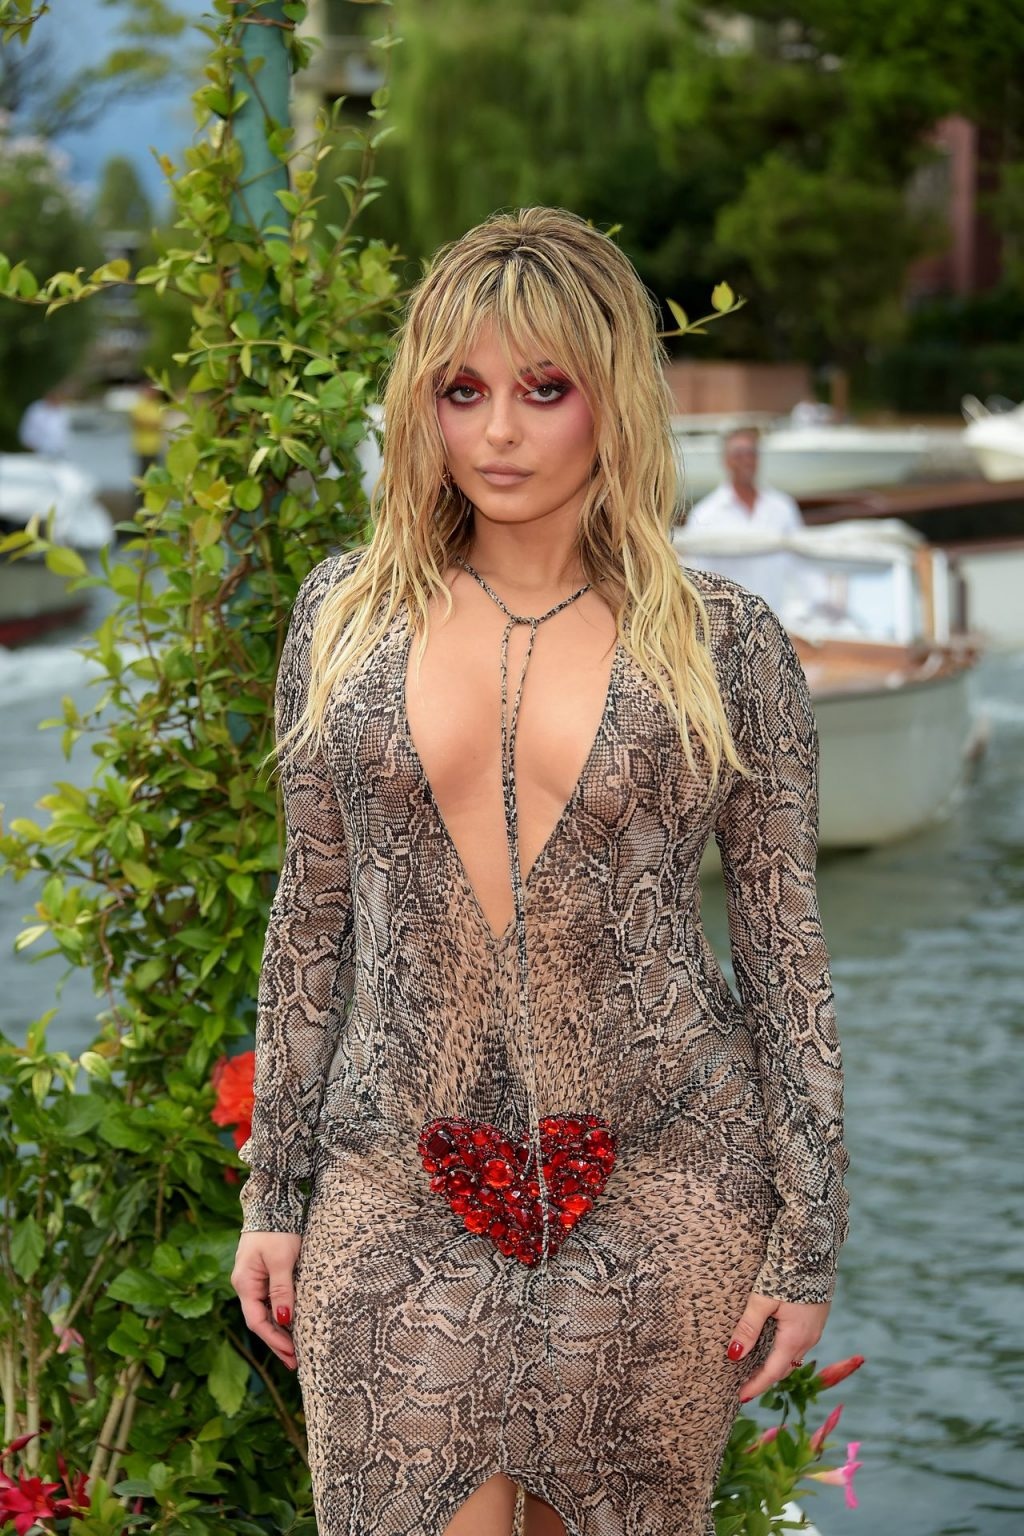 Bebe Rexha Poses in a See-Through Dress in Venice (34 Photos) [Updated]